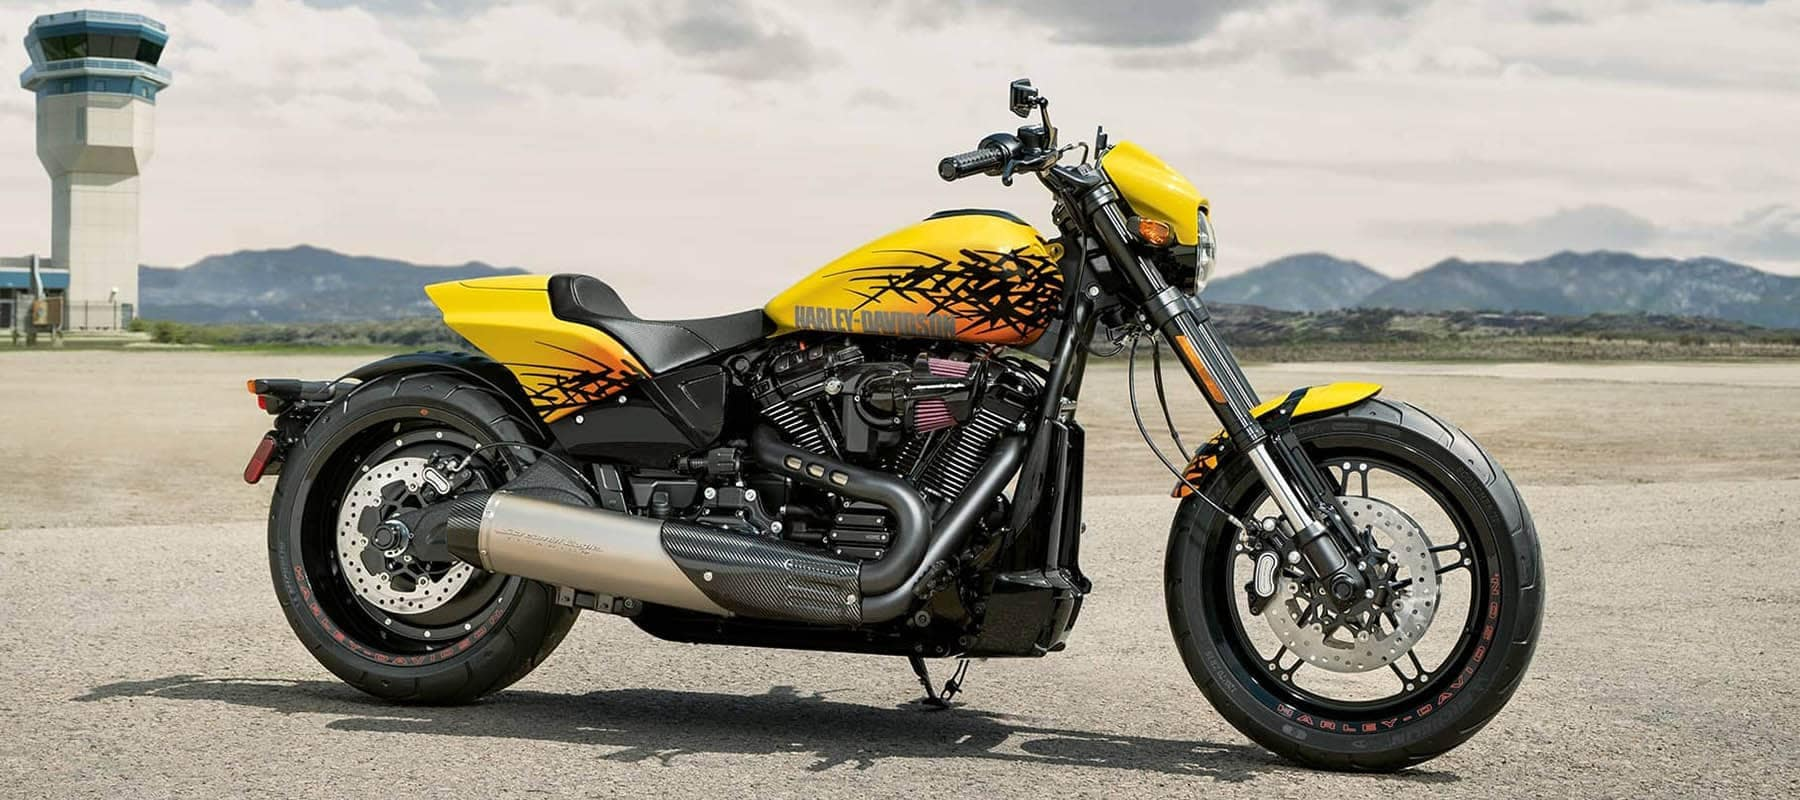 19-softail-fxdr-114-gallery-11-1800x800